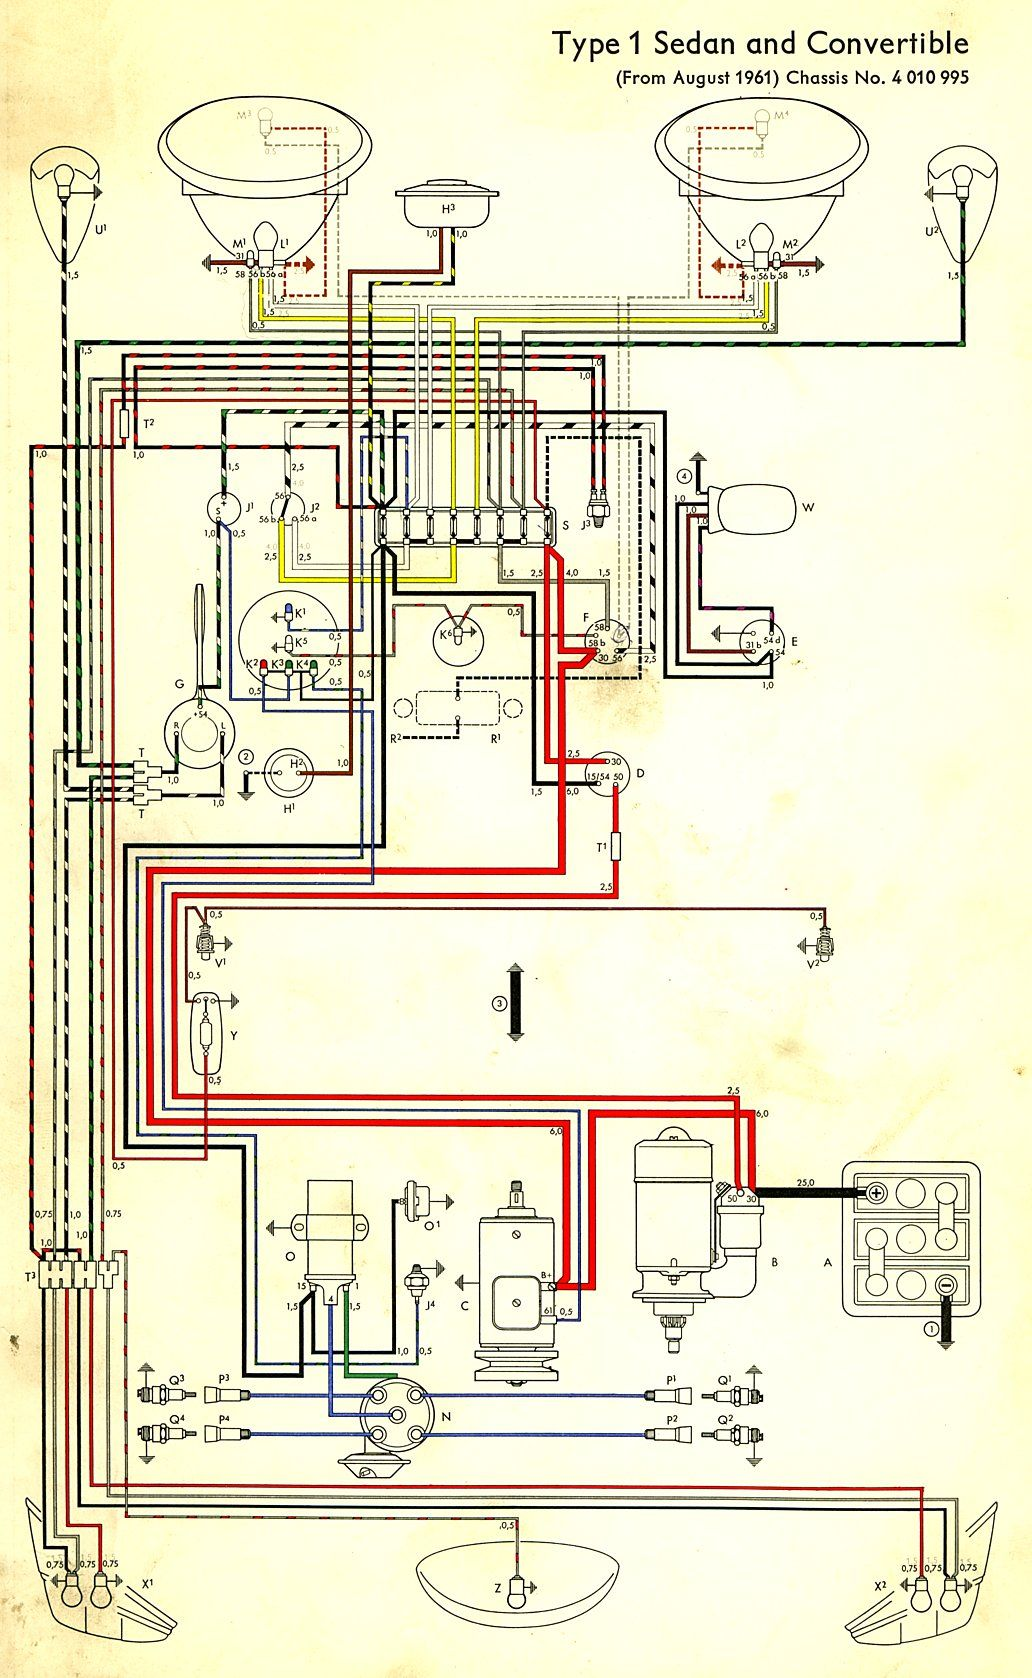 1964 vw wiring diagram [ 1032 x 1678 Pixel ]